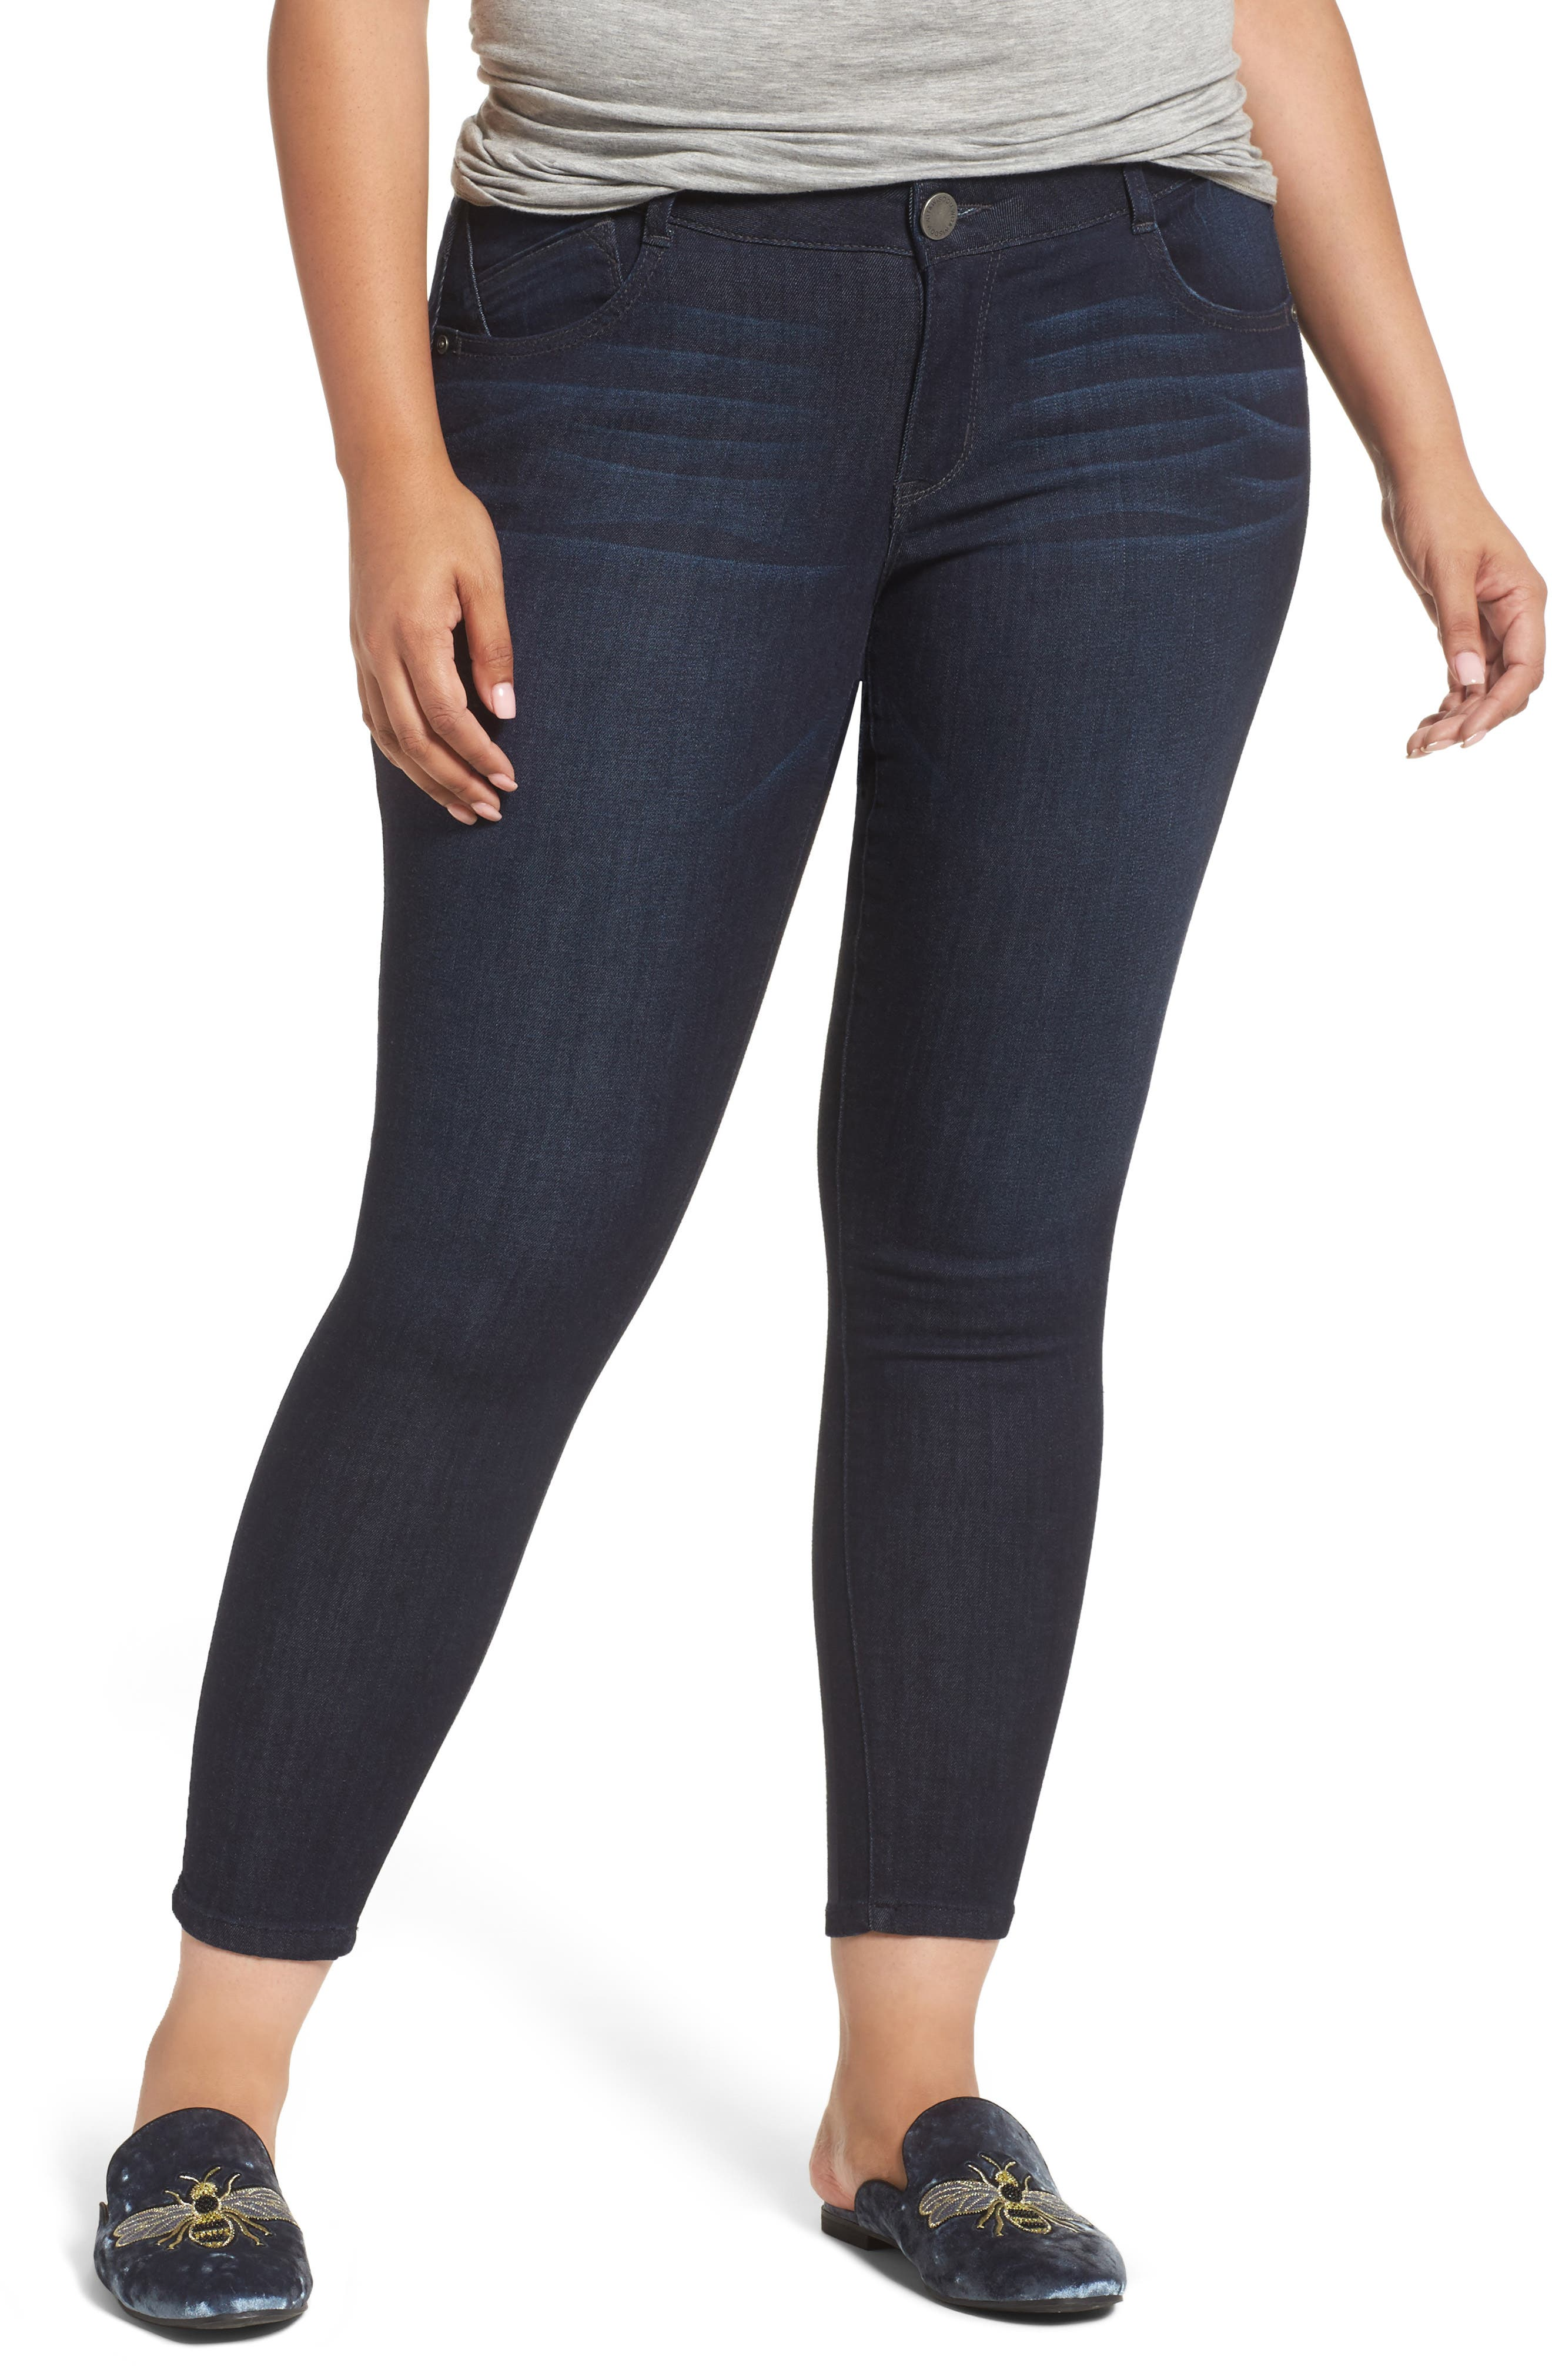 Alternate Image 1 Selected - Wit & Wisdom Ab-solution Ankle Skimmer Jeans (Plus Size) (Nordstrom Exclusive)